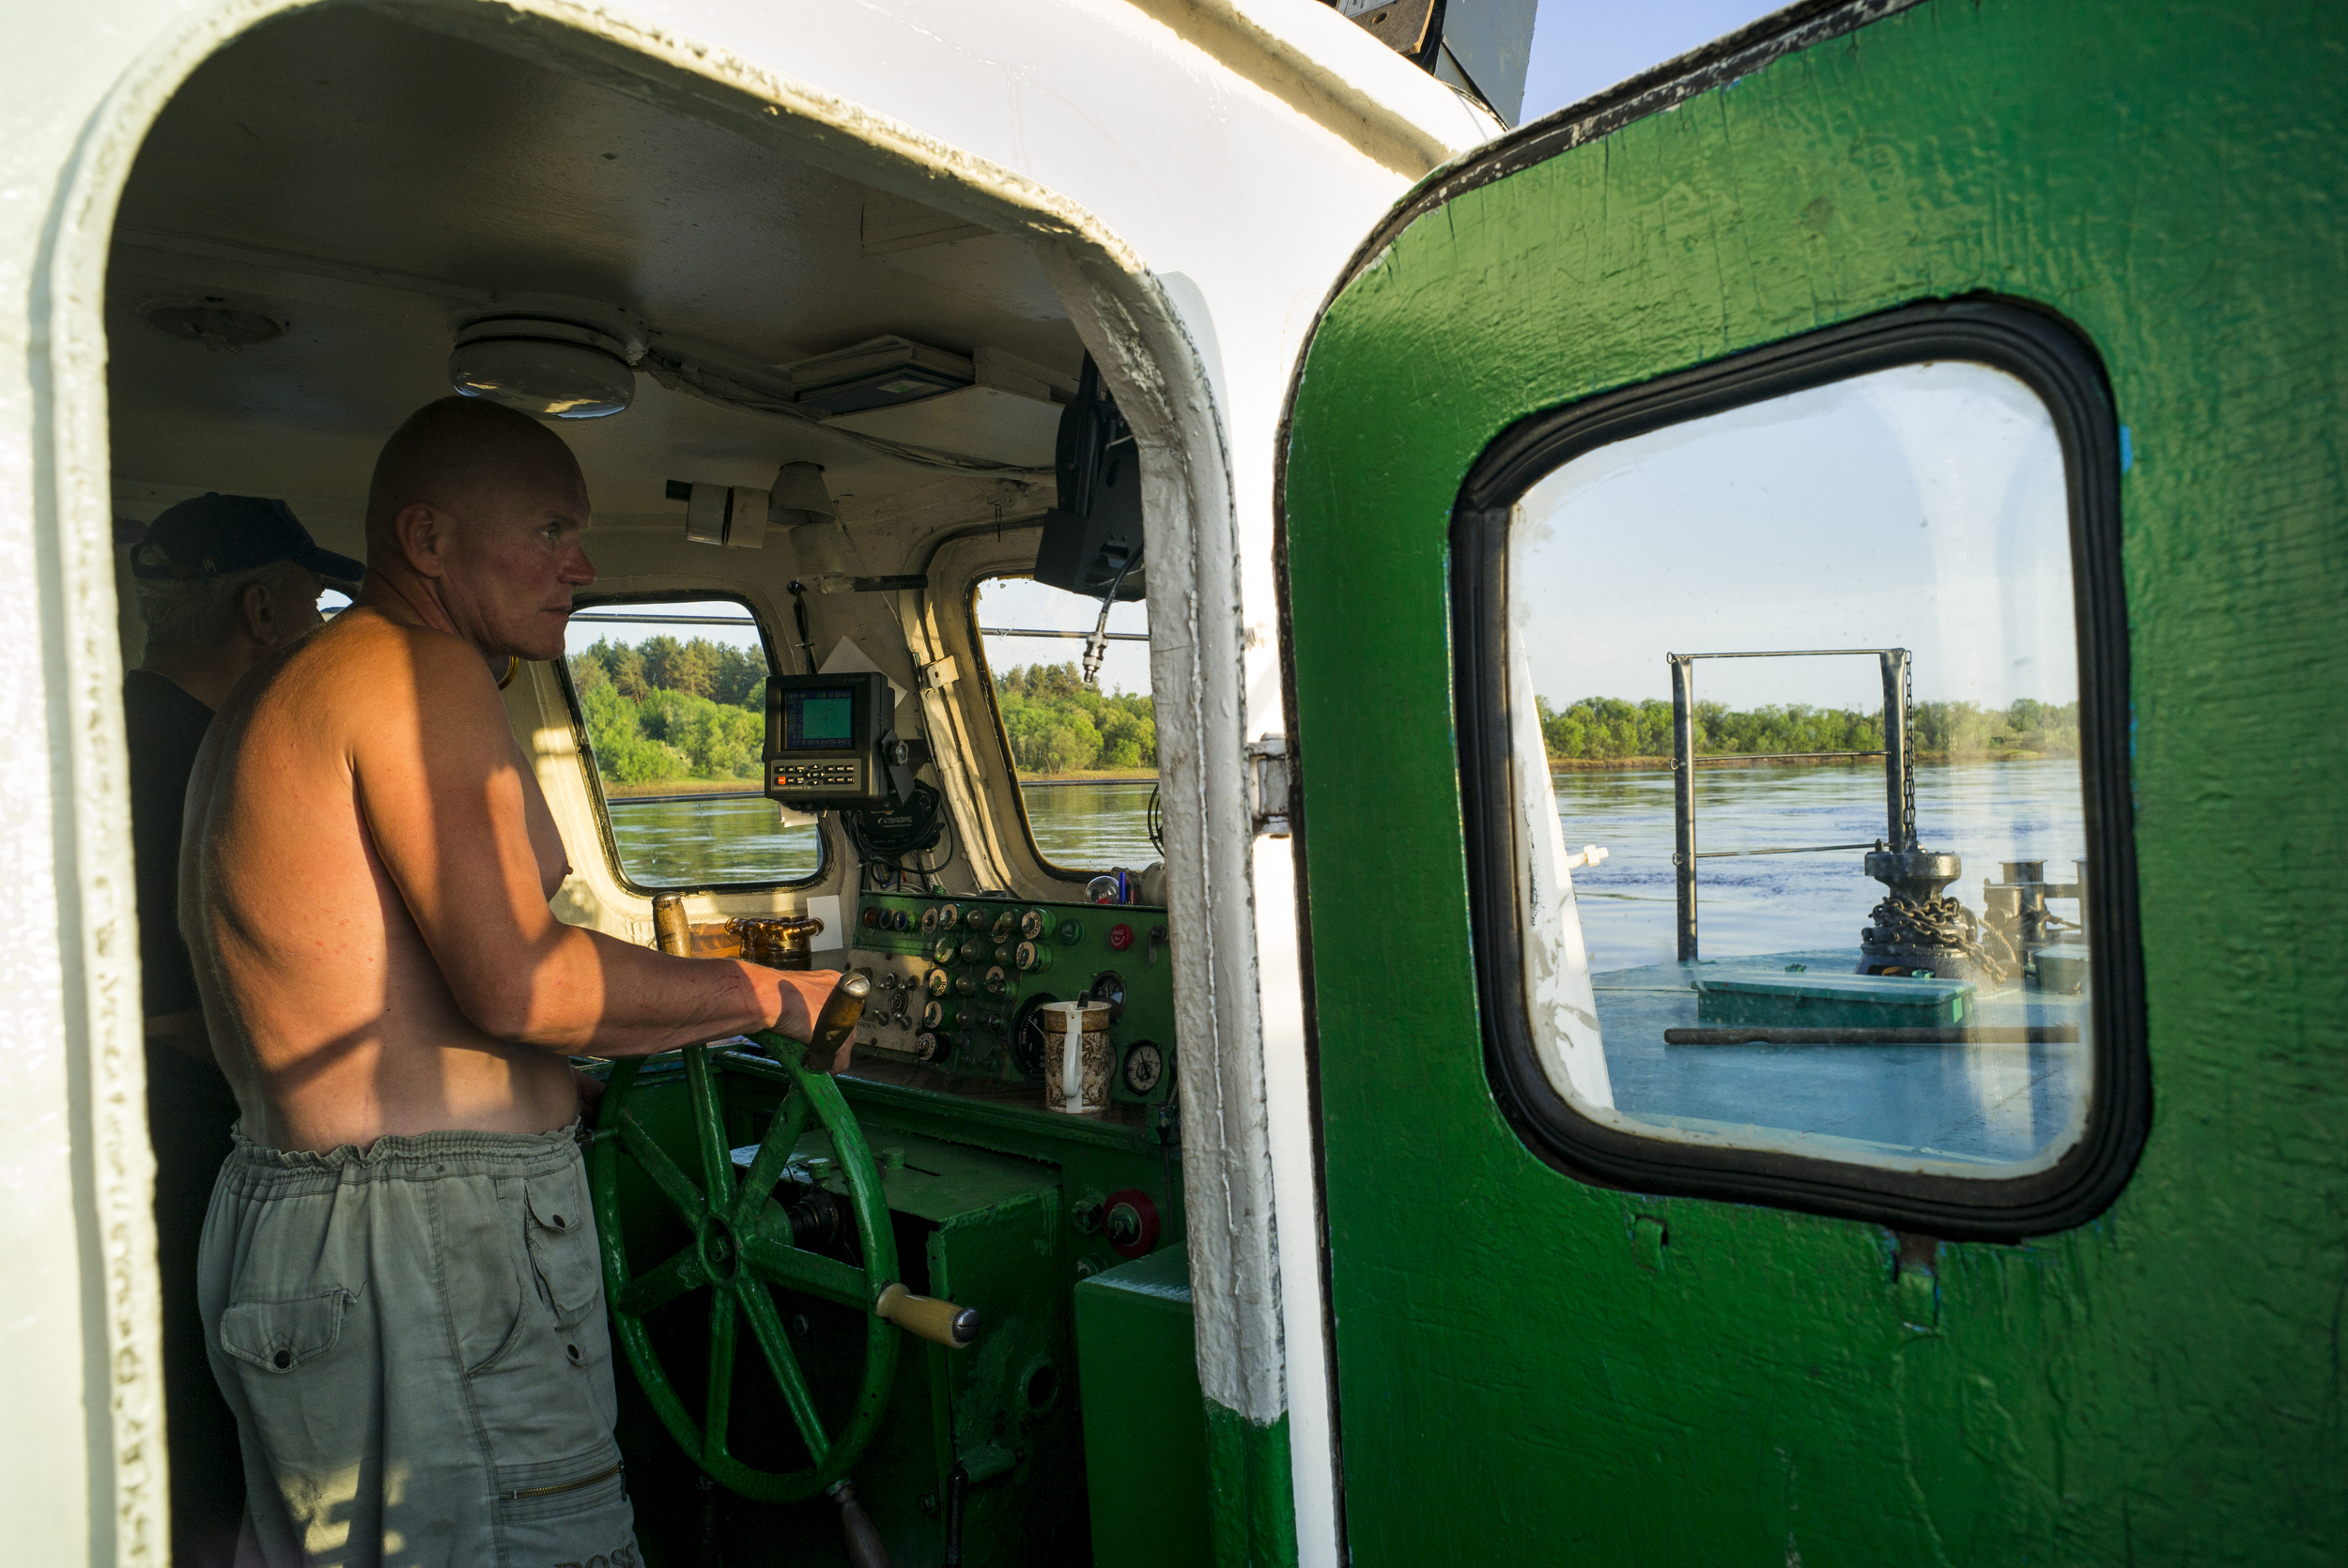 Captain Uri Mitriovitch gazes forward at what's to come and what will never change as he guides his ferry across the Vychegda River in Russia on May 30, 2015. (© Alicia Afshar)